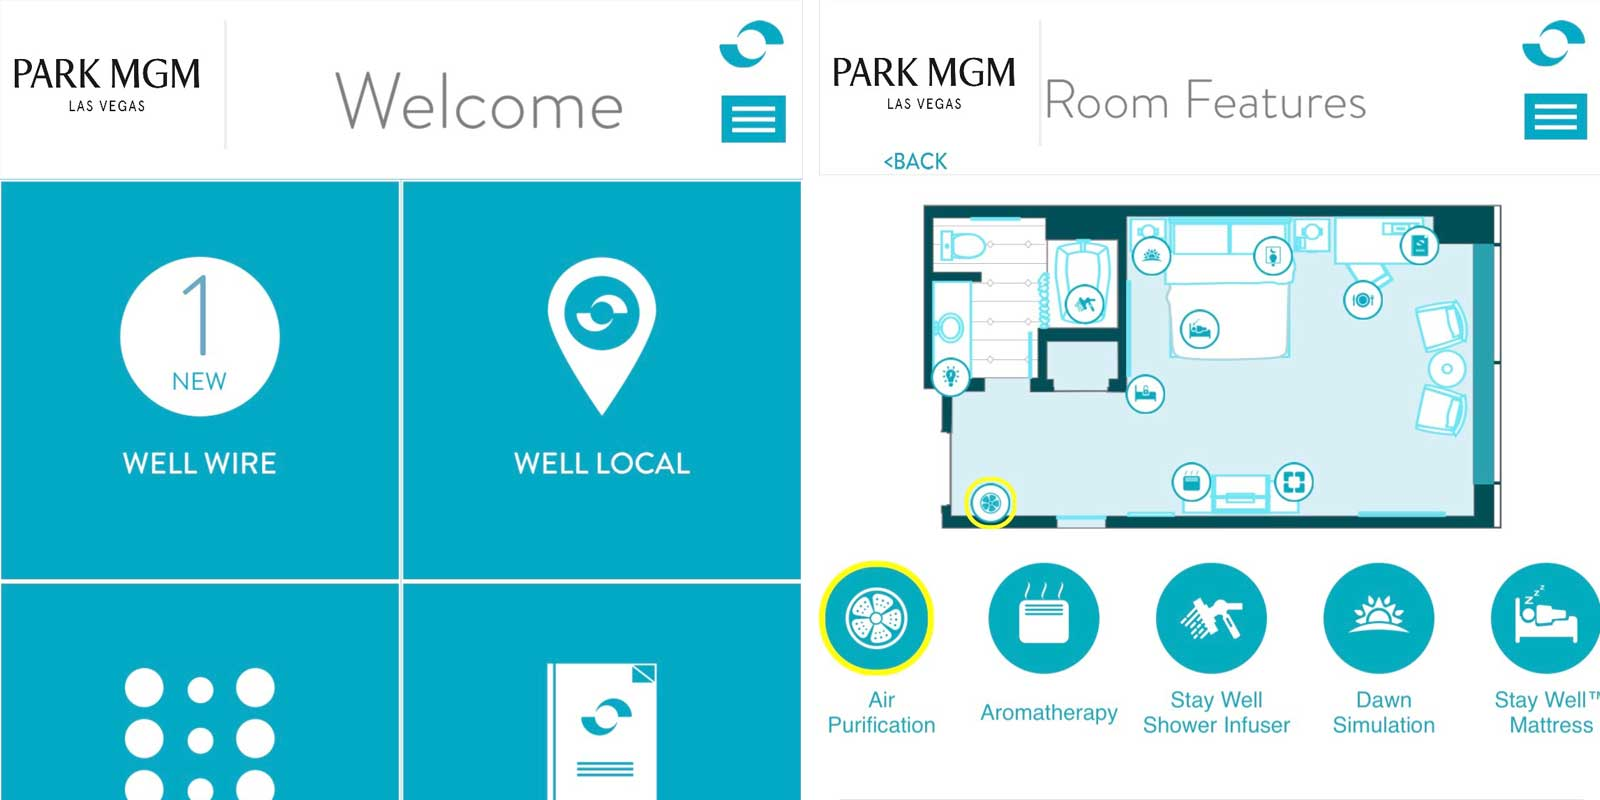 Collage of screenshots from the Park MGM Stay Well app.